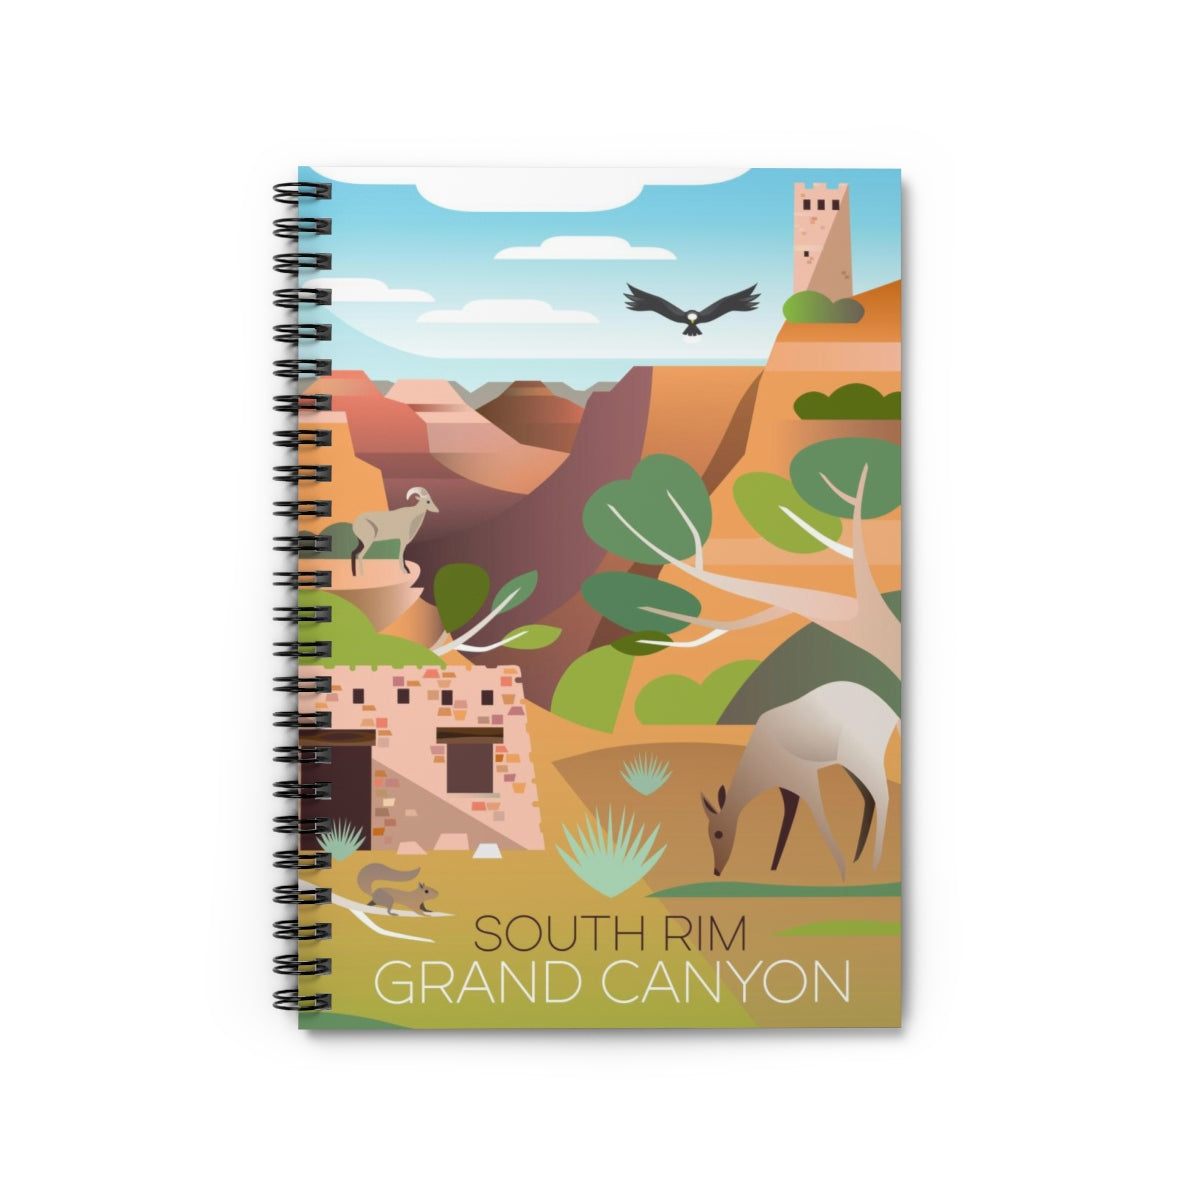 GRAND CANYON SOUTH RIM JOURNAL